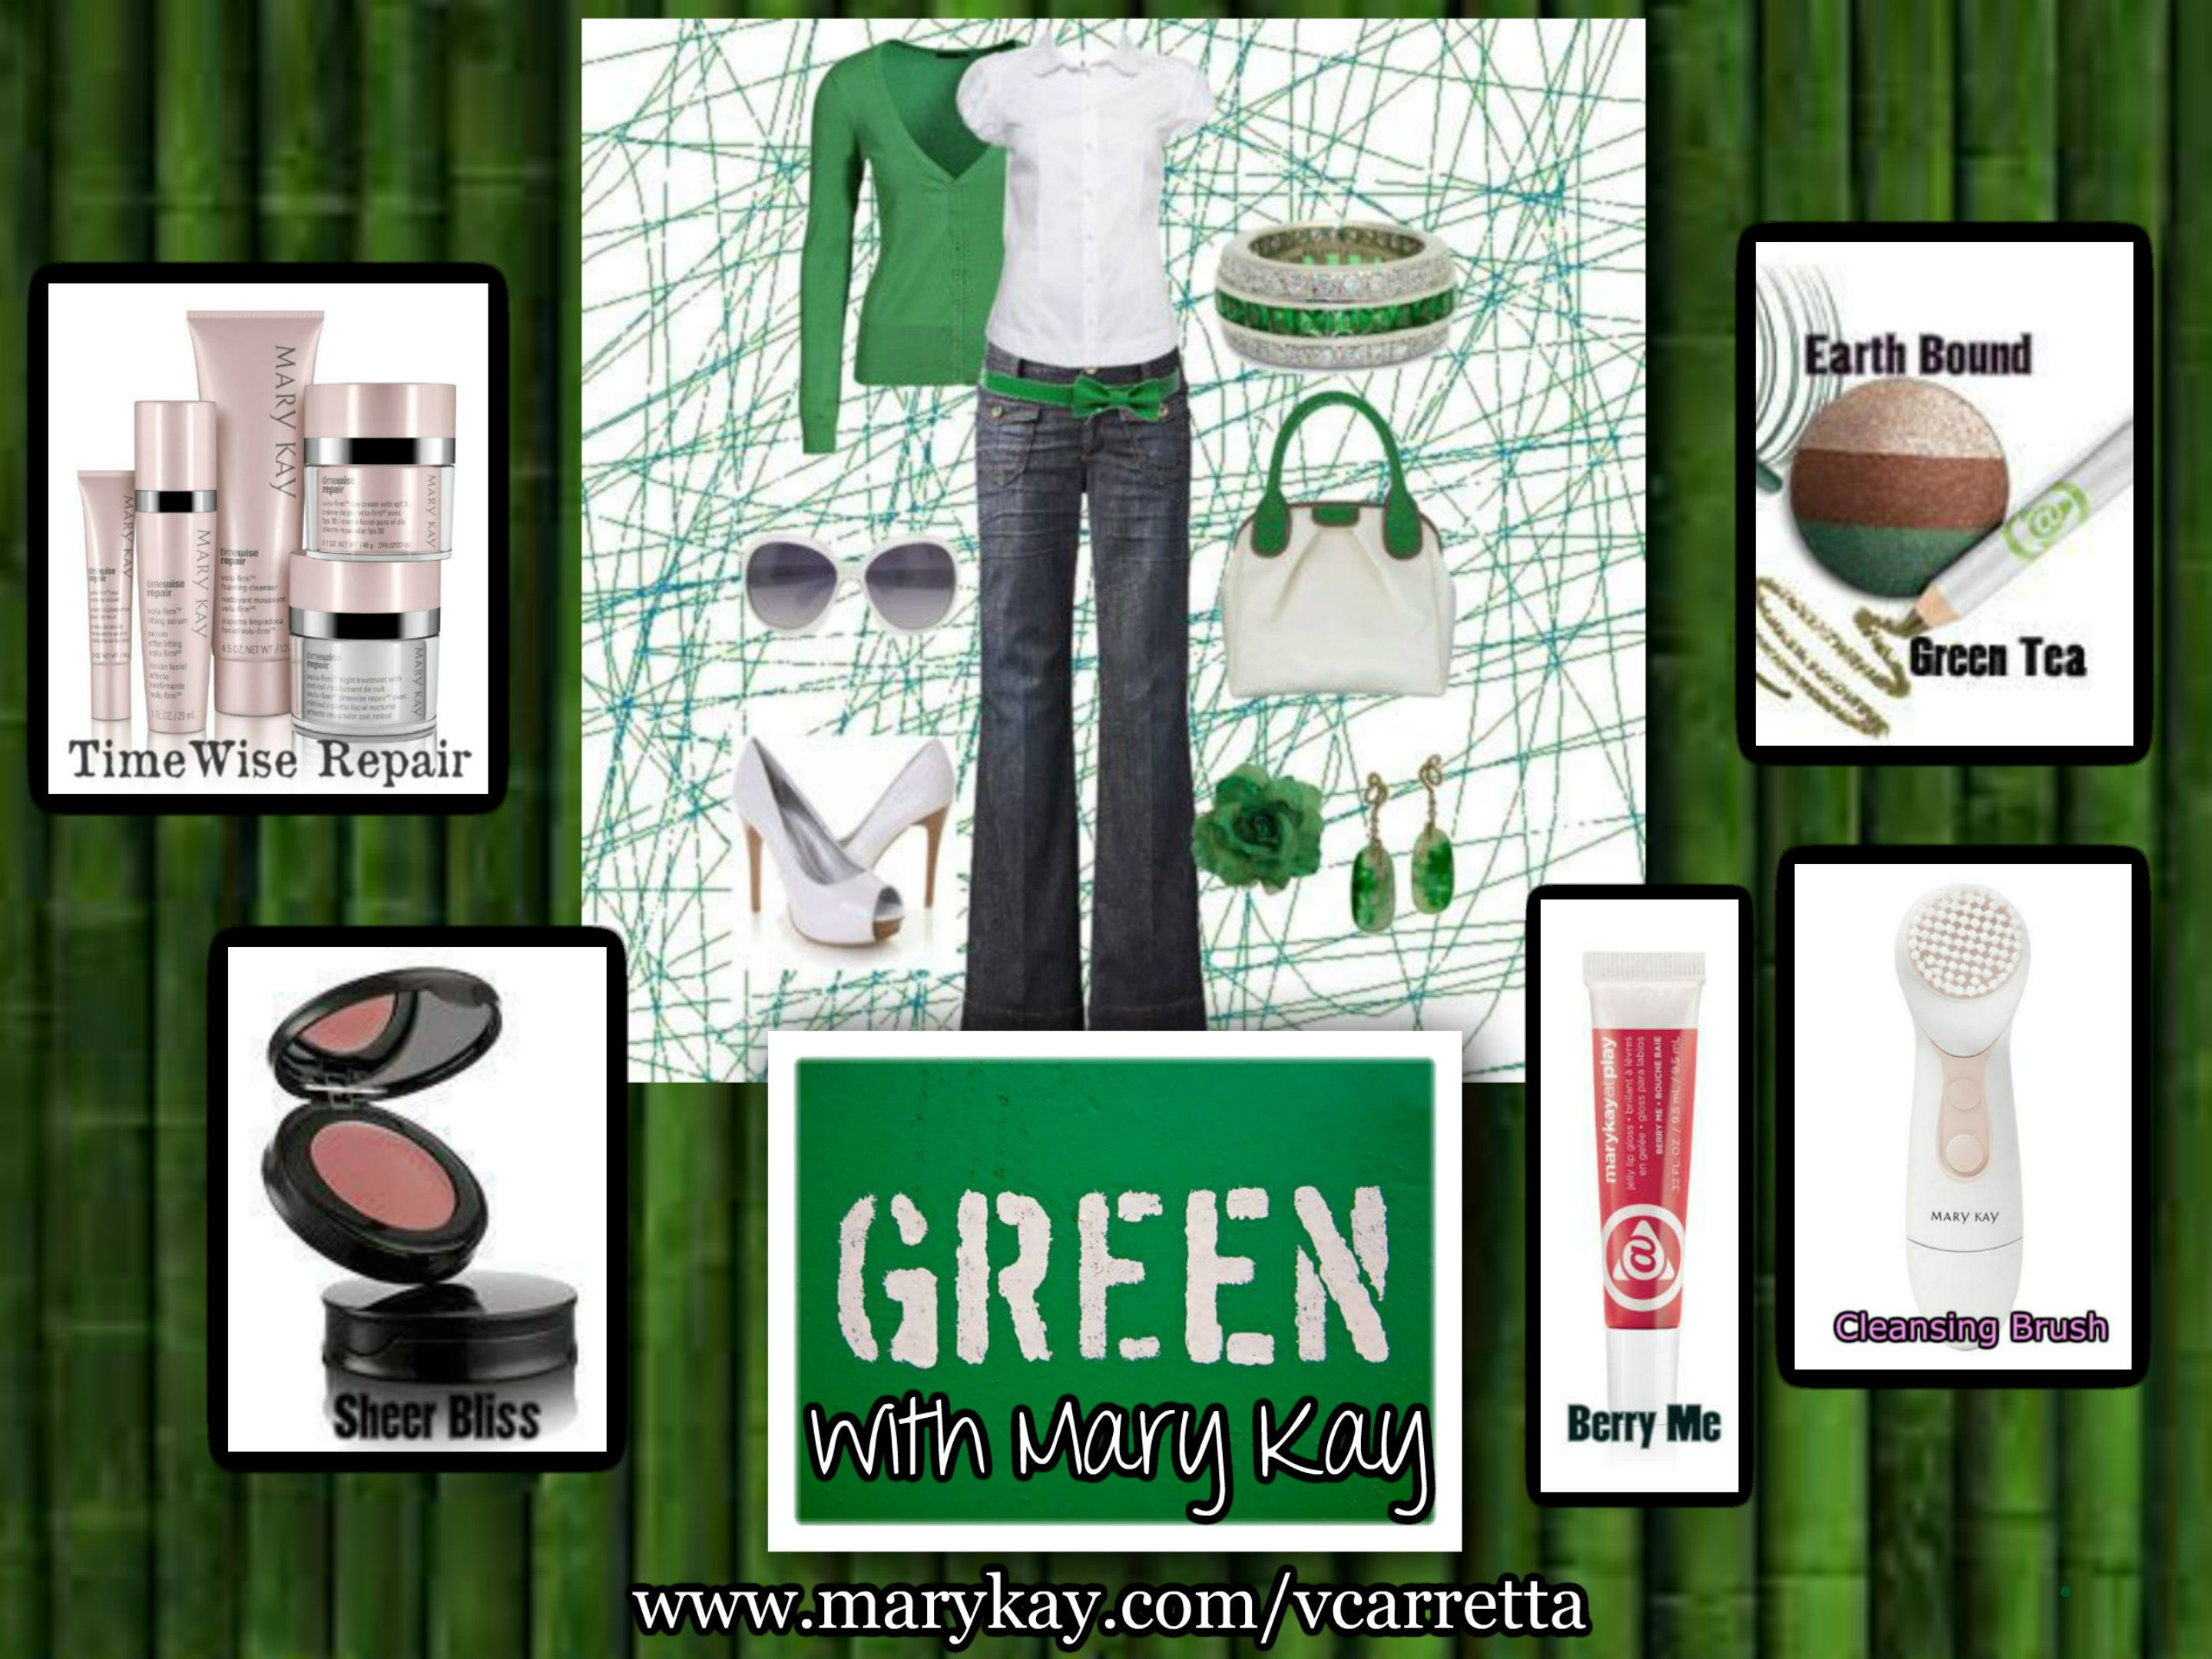 Show your green for St. Patty's Day Mary Kay style!  ORDER:  www.marykay.com/vcarretta